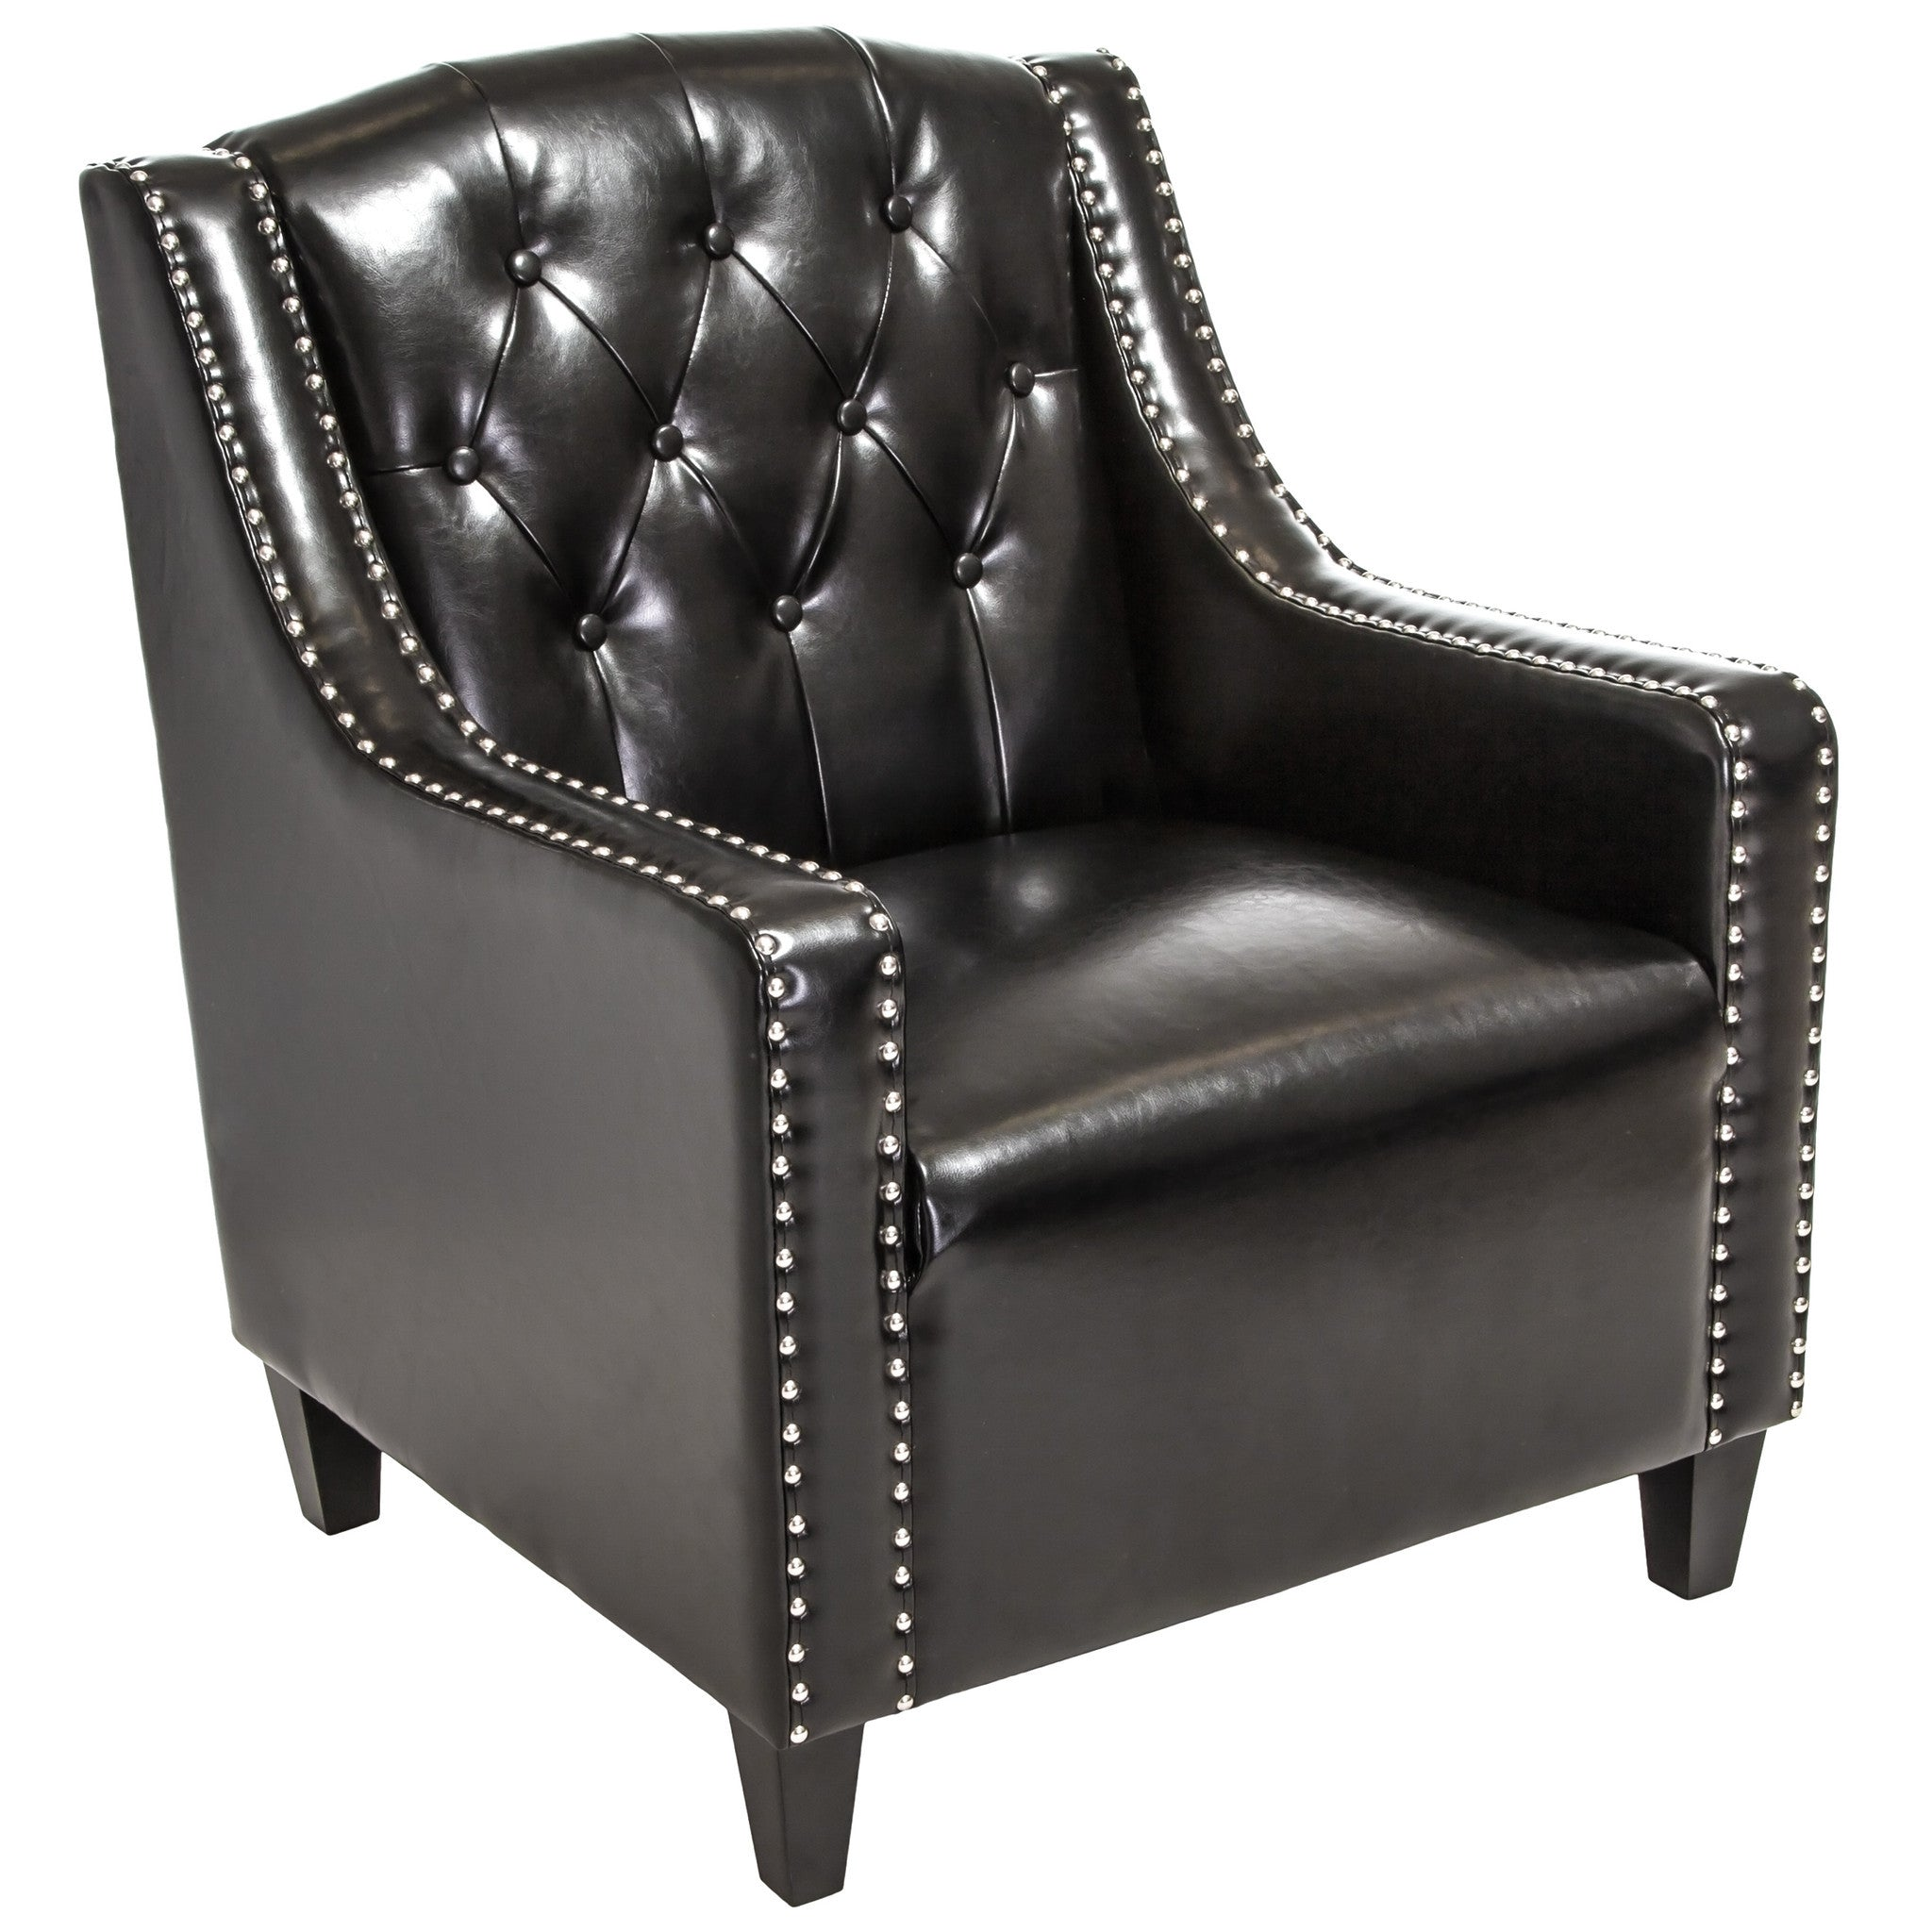 top jet chair s design in rocket grain distressed brown leather club itm ebay fighter